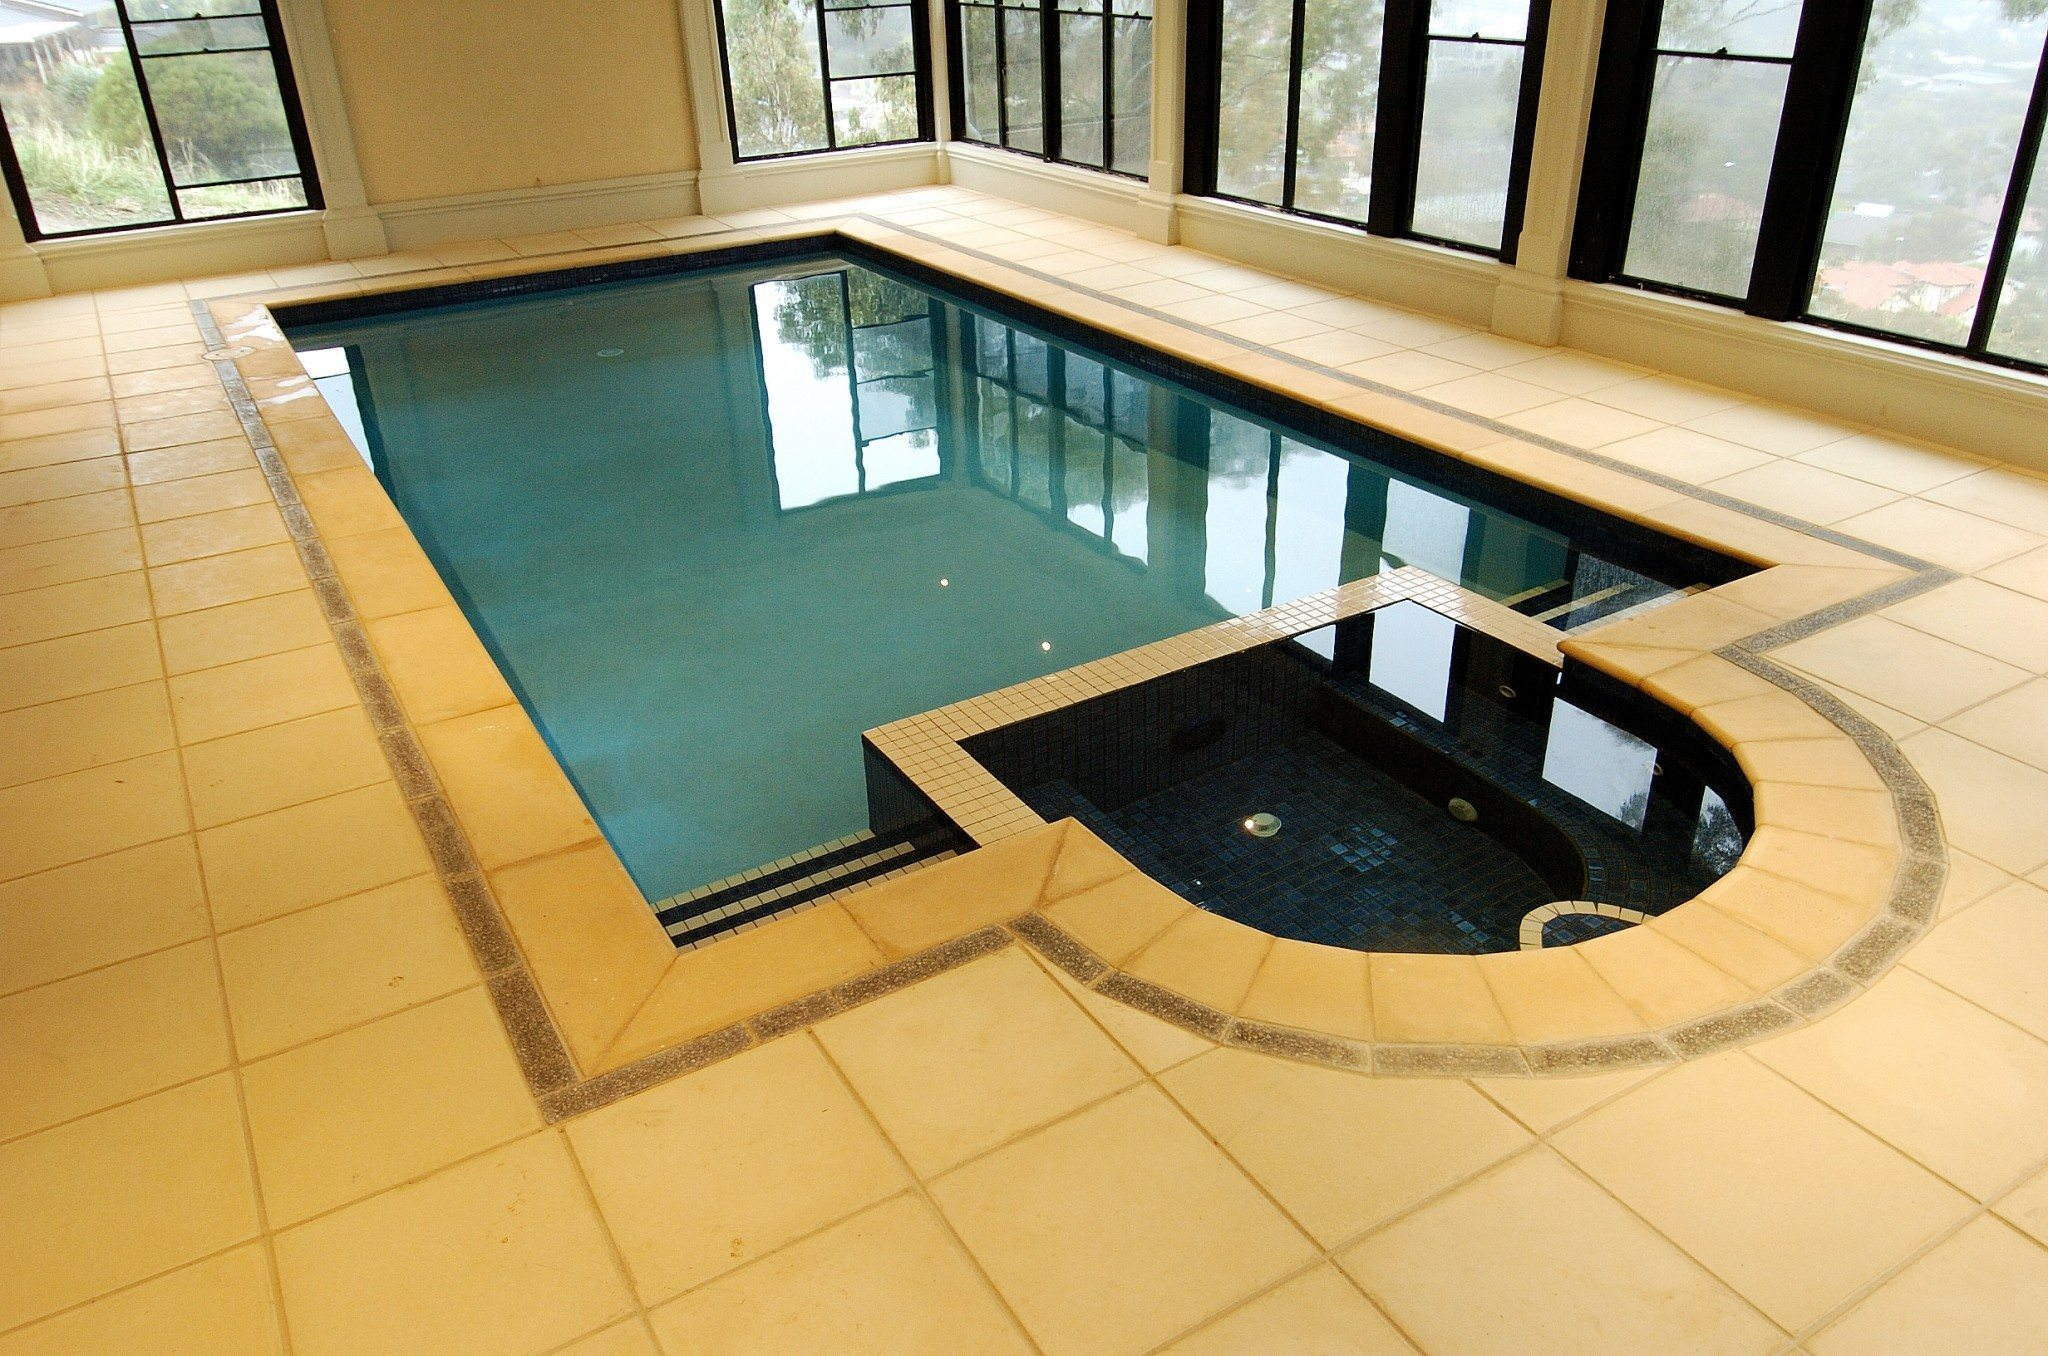 Indoor Tiled Pool and Spa